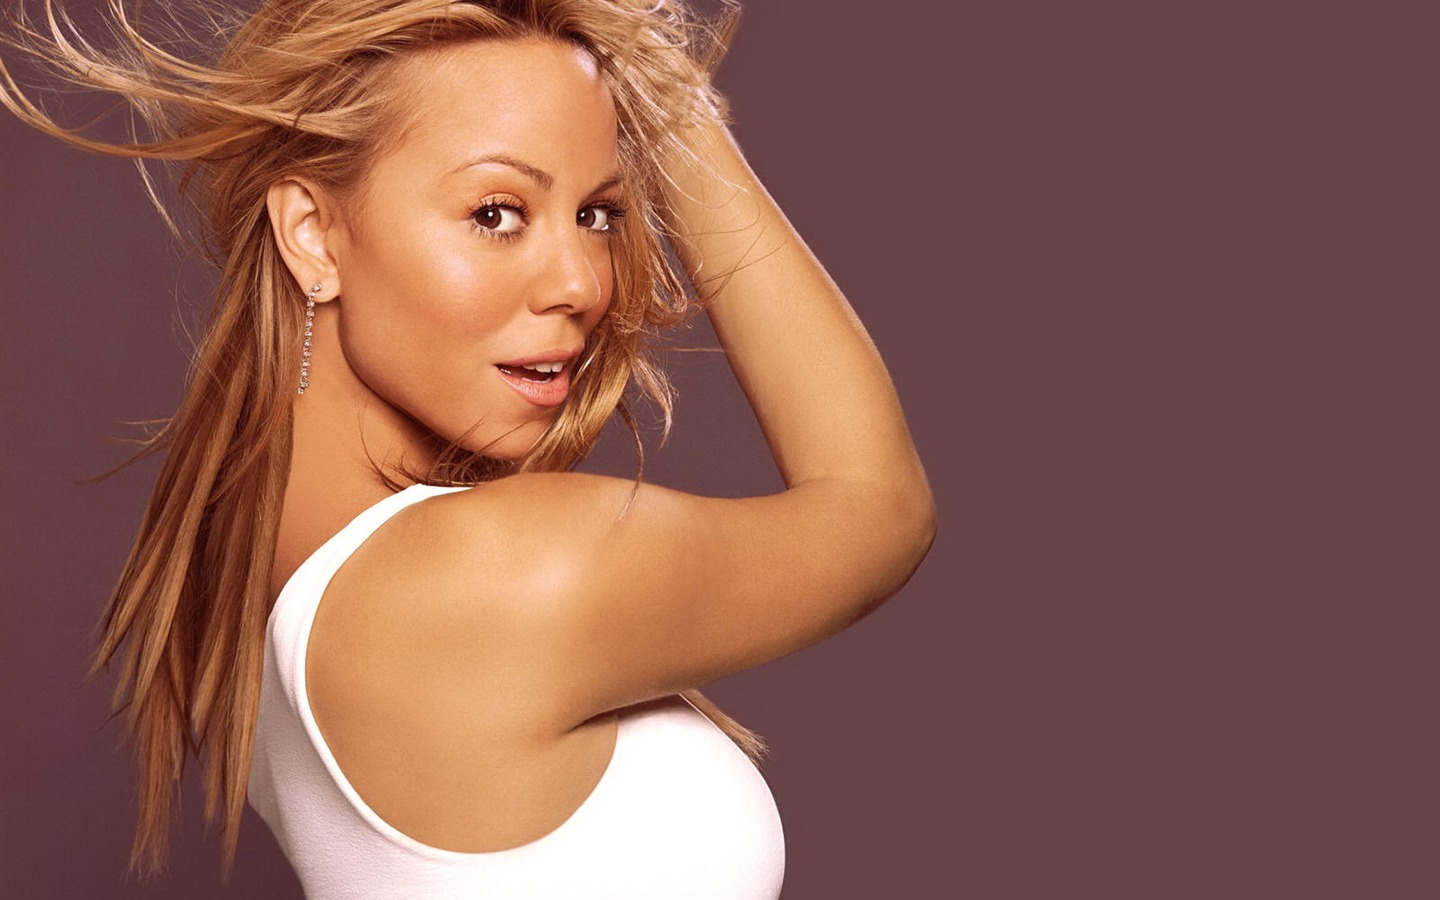 Mariah Carey #031 - 1440x900 Wallpapers Pictures Photos Images